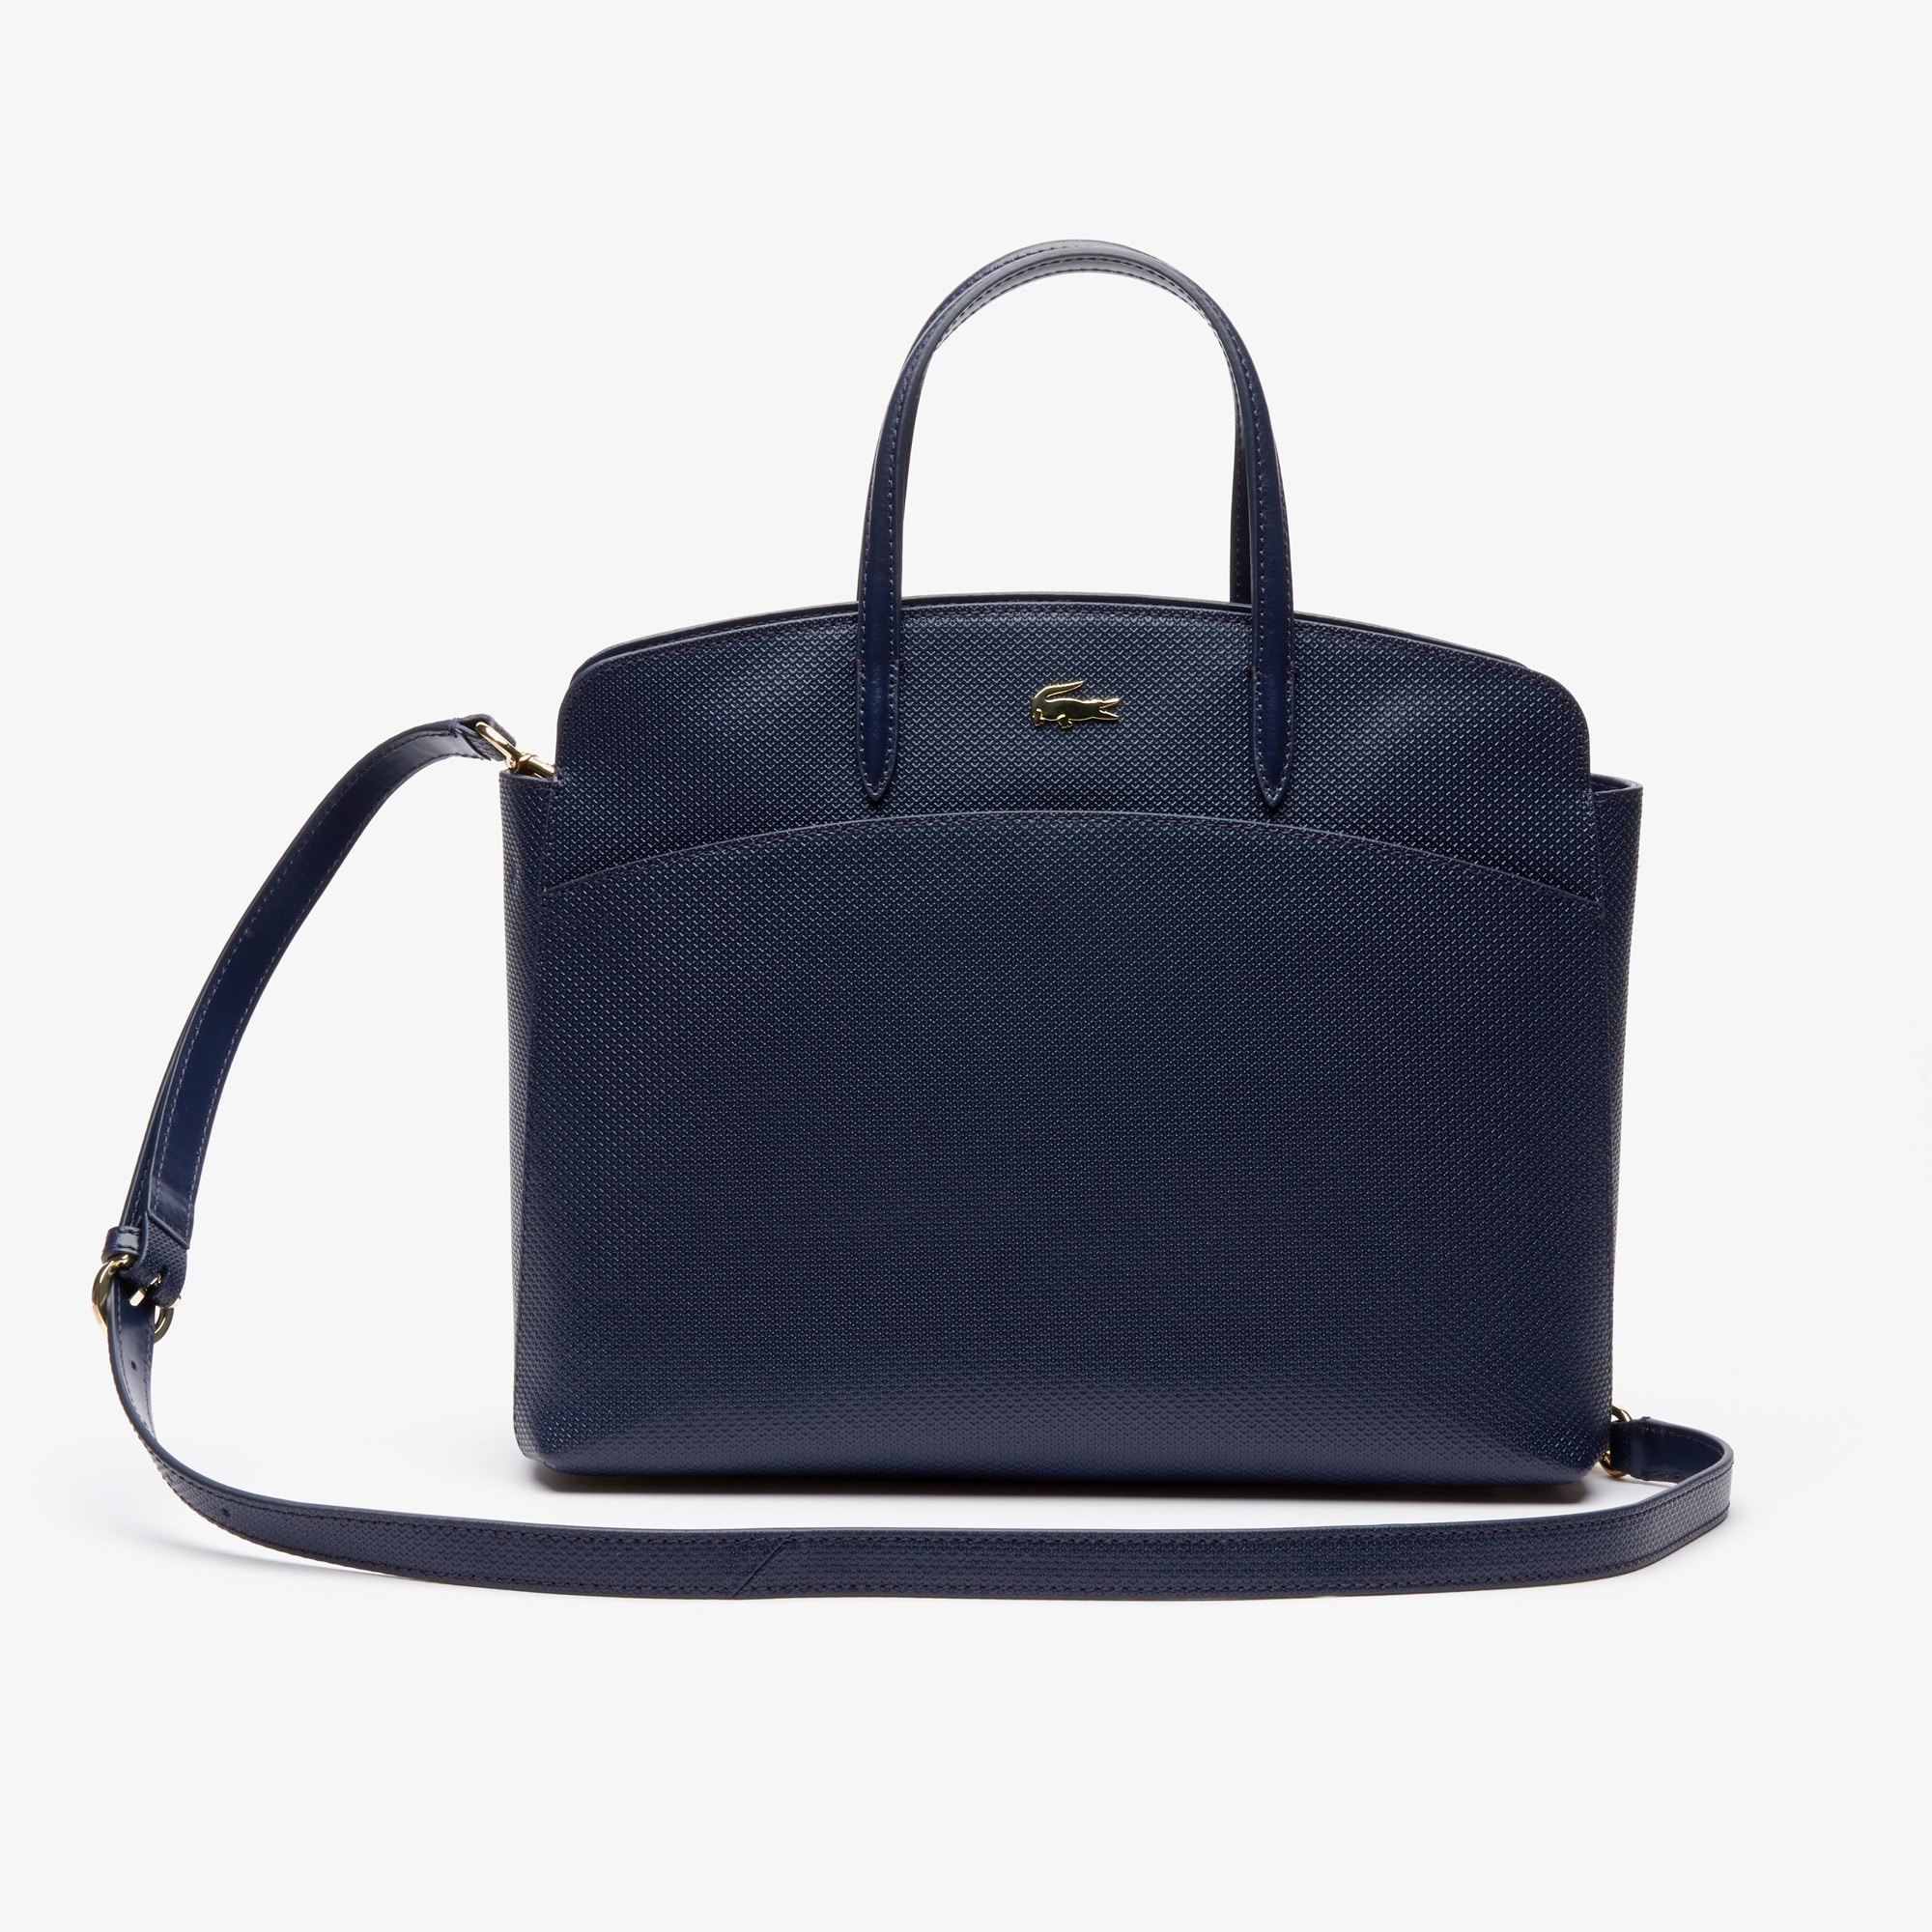 aa39b598793379 Purses and Handbags |Clutches and Totes | LACOSTE